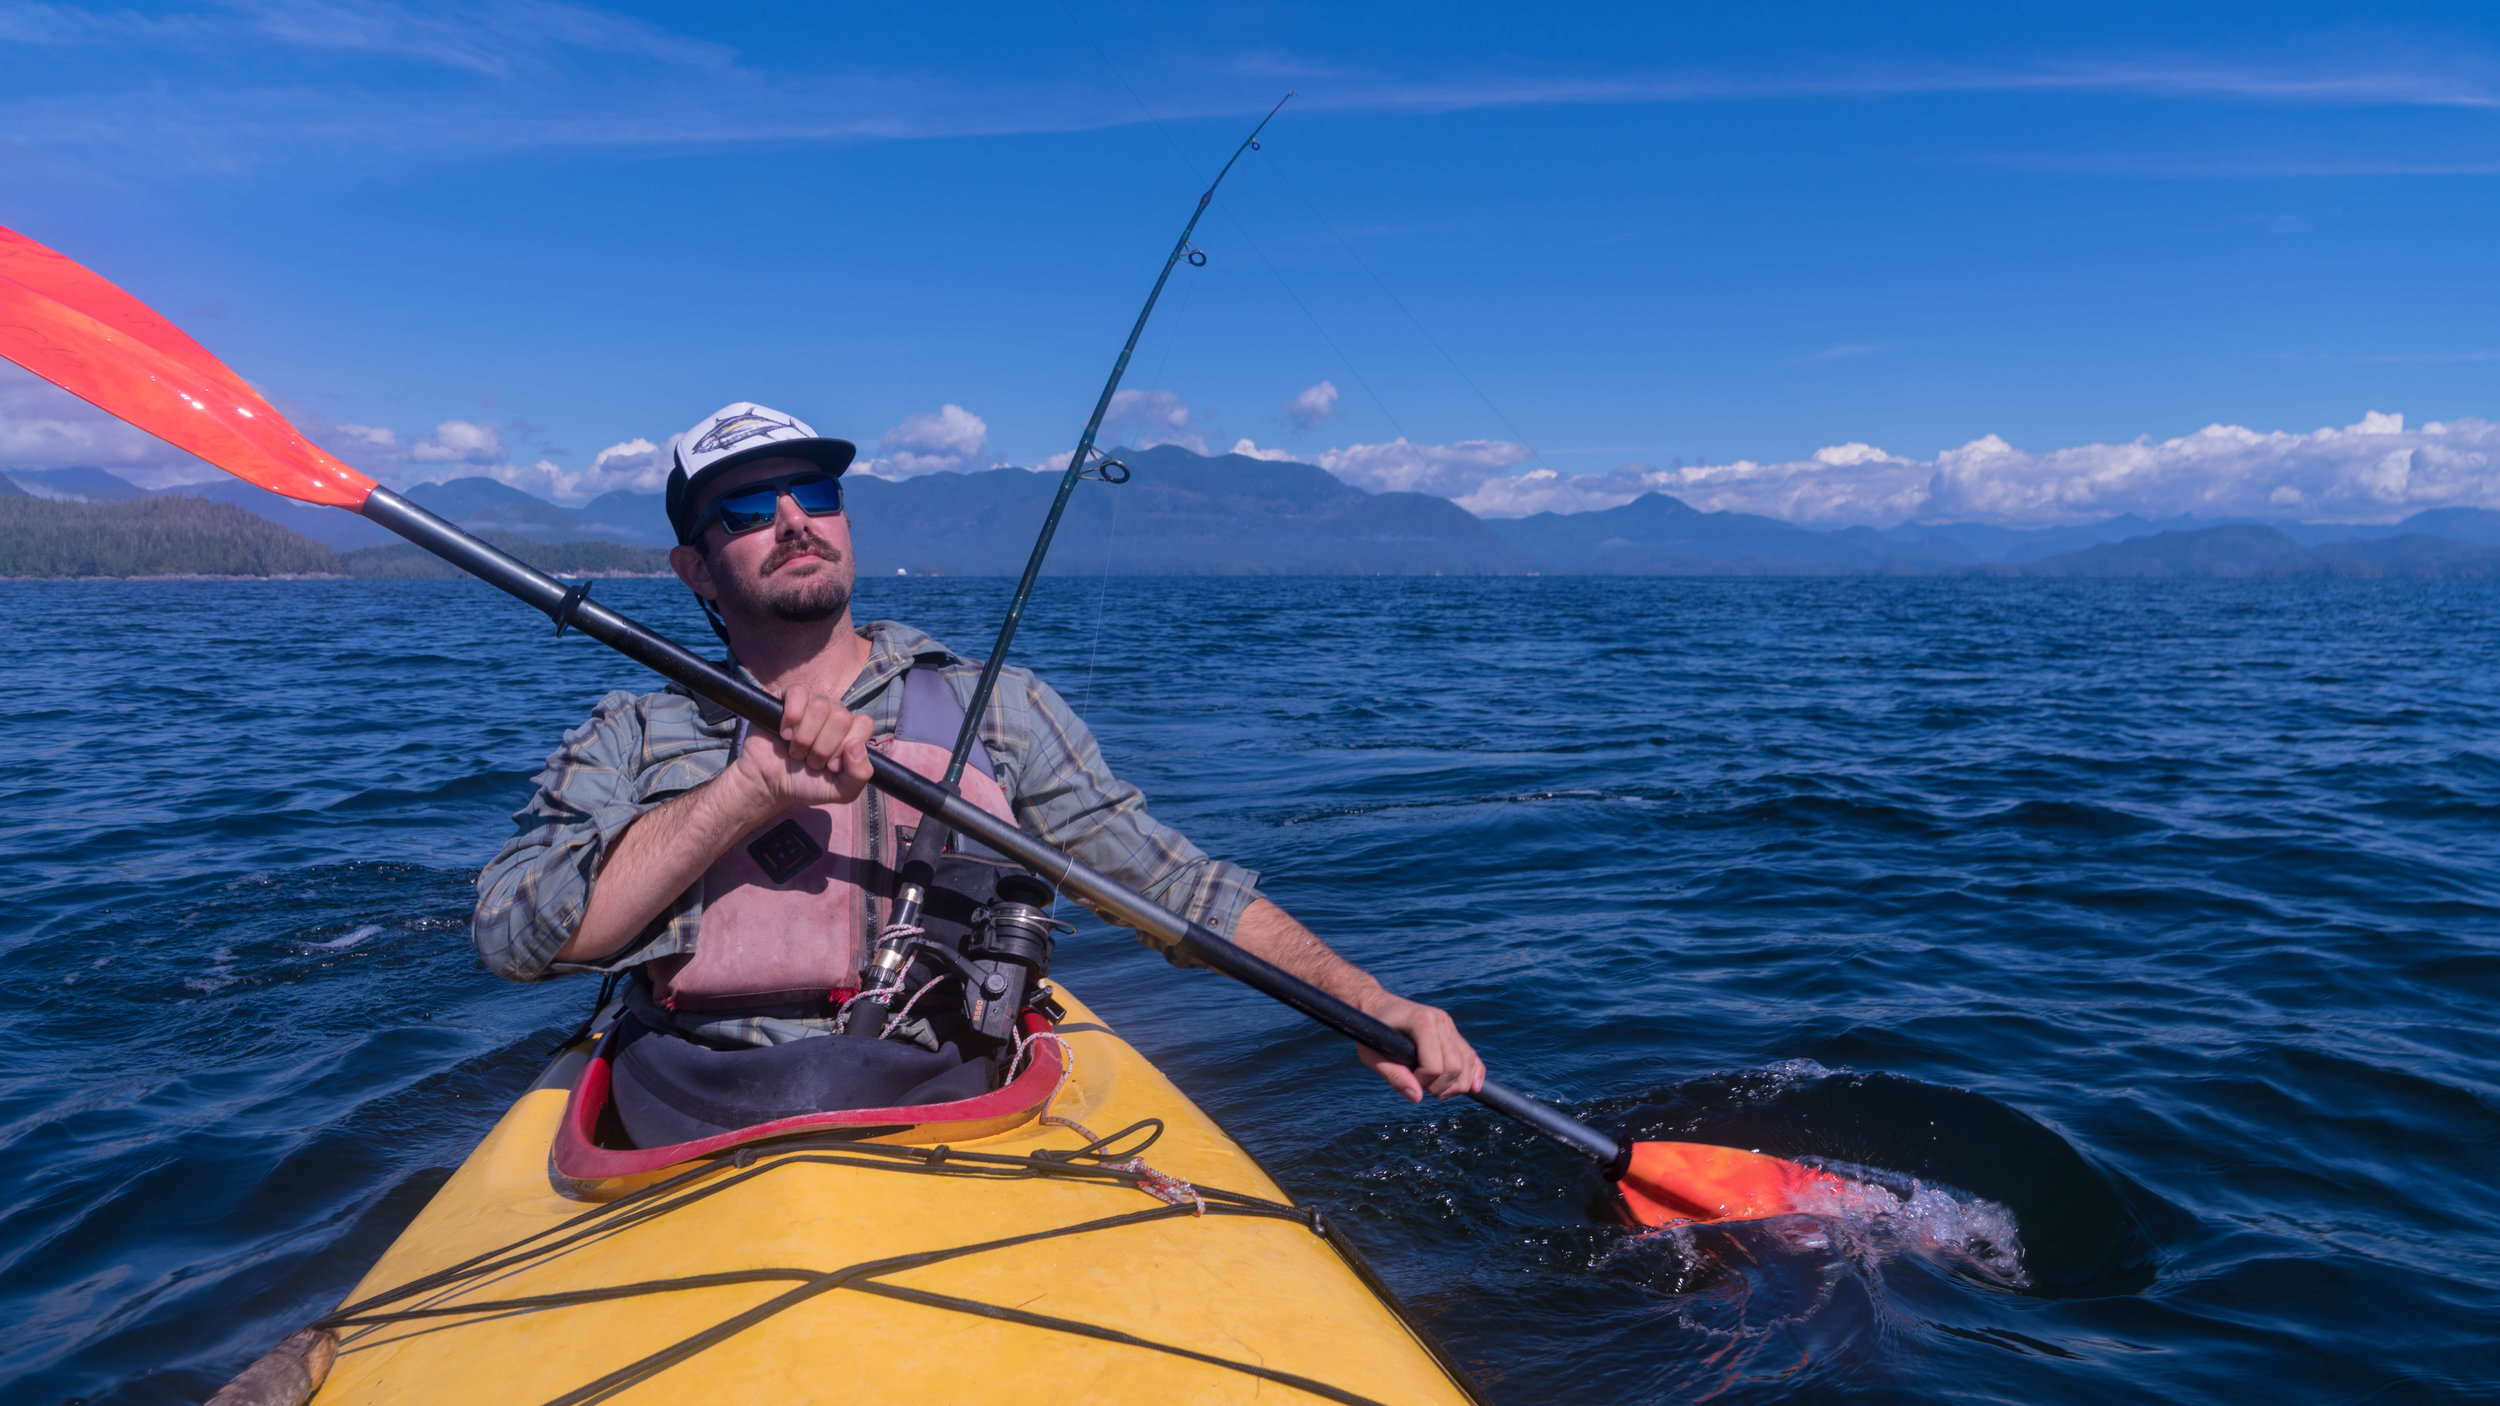 Kayaking fishing pic.jpg